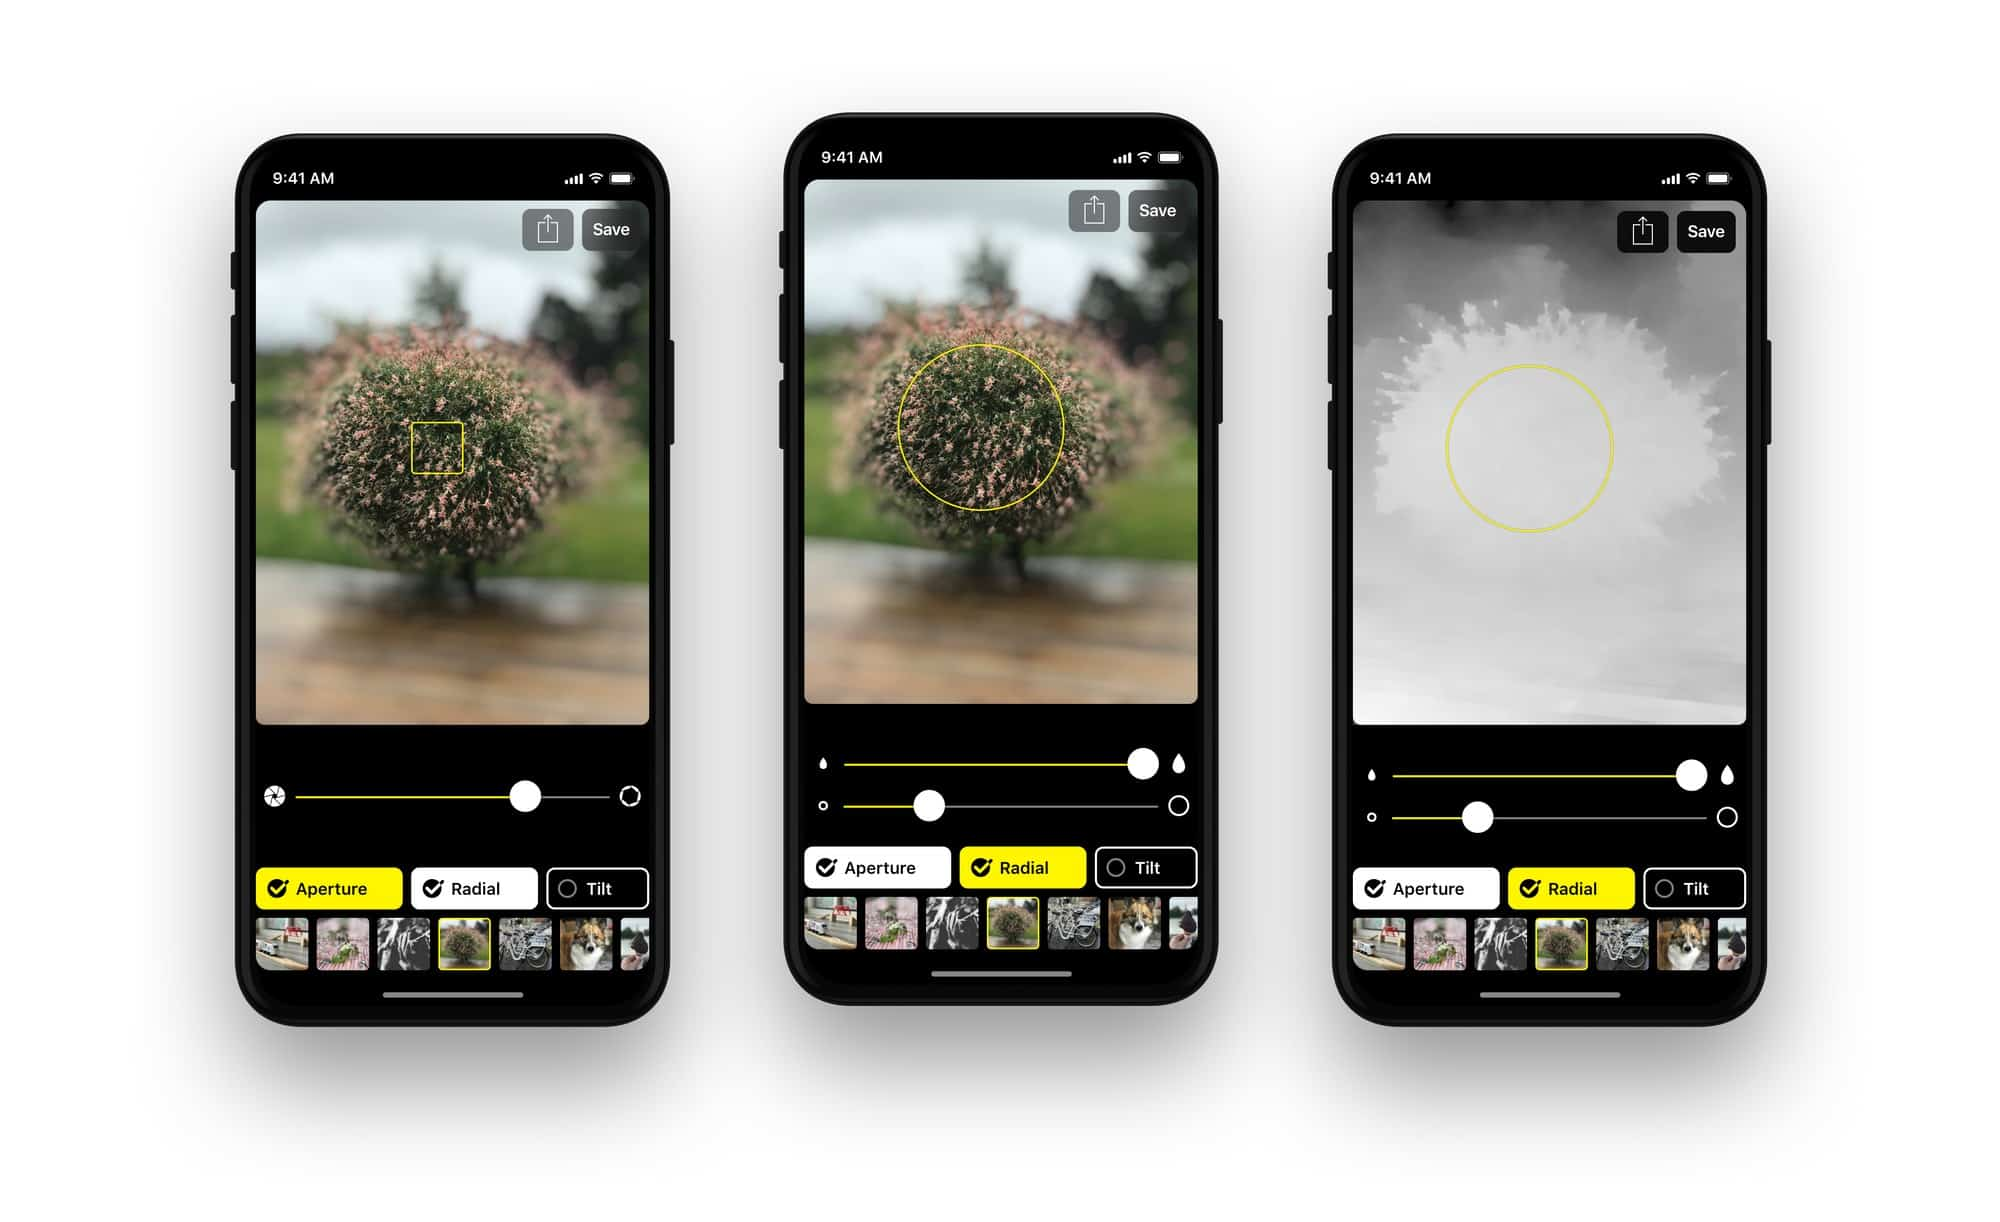 New iPhone XS Owners Should Install these 5 Great Depth Apps